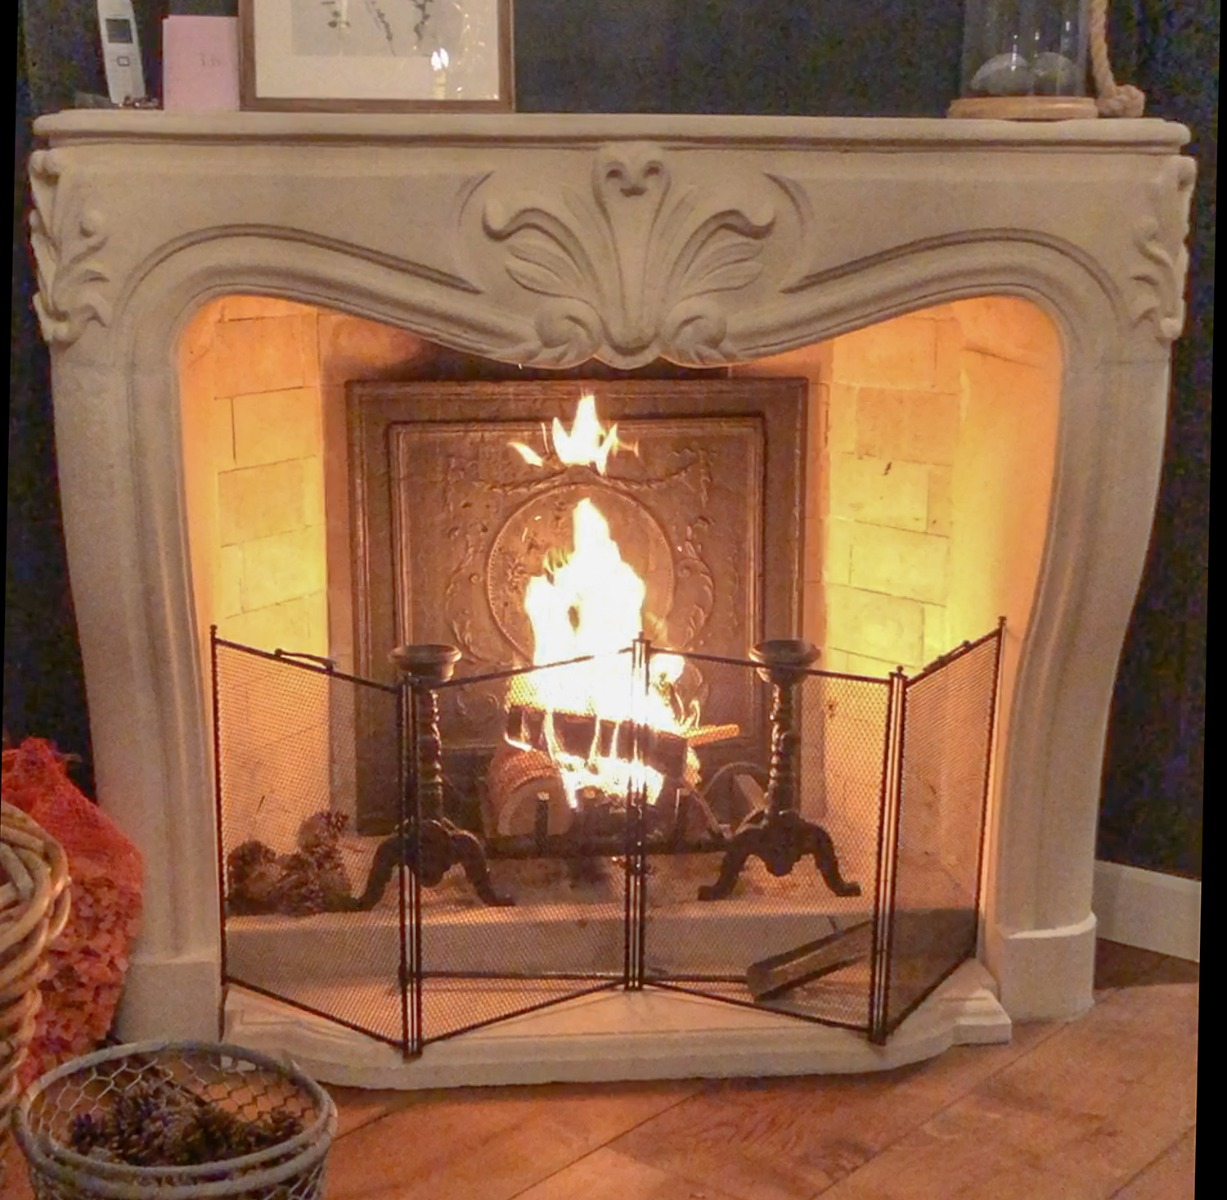 How Should A Fireplace Screen Be